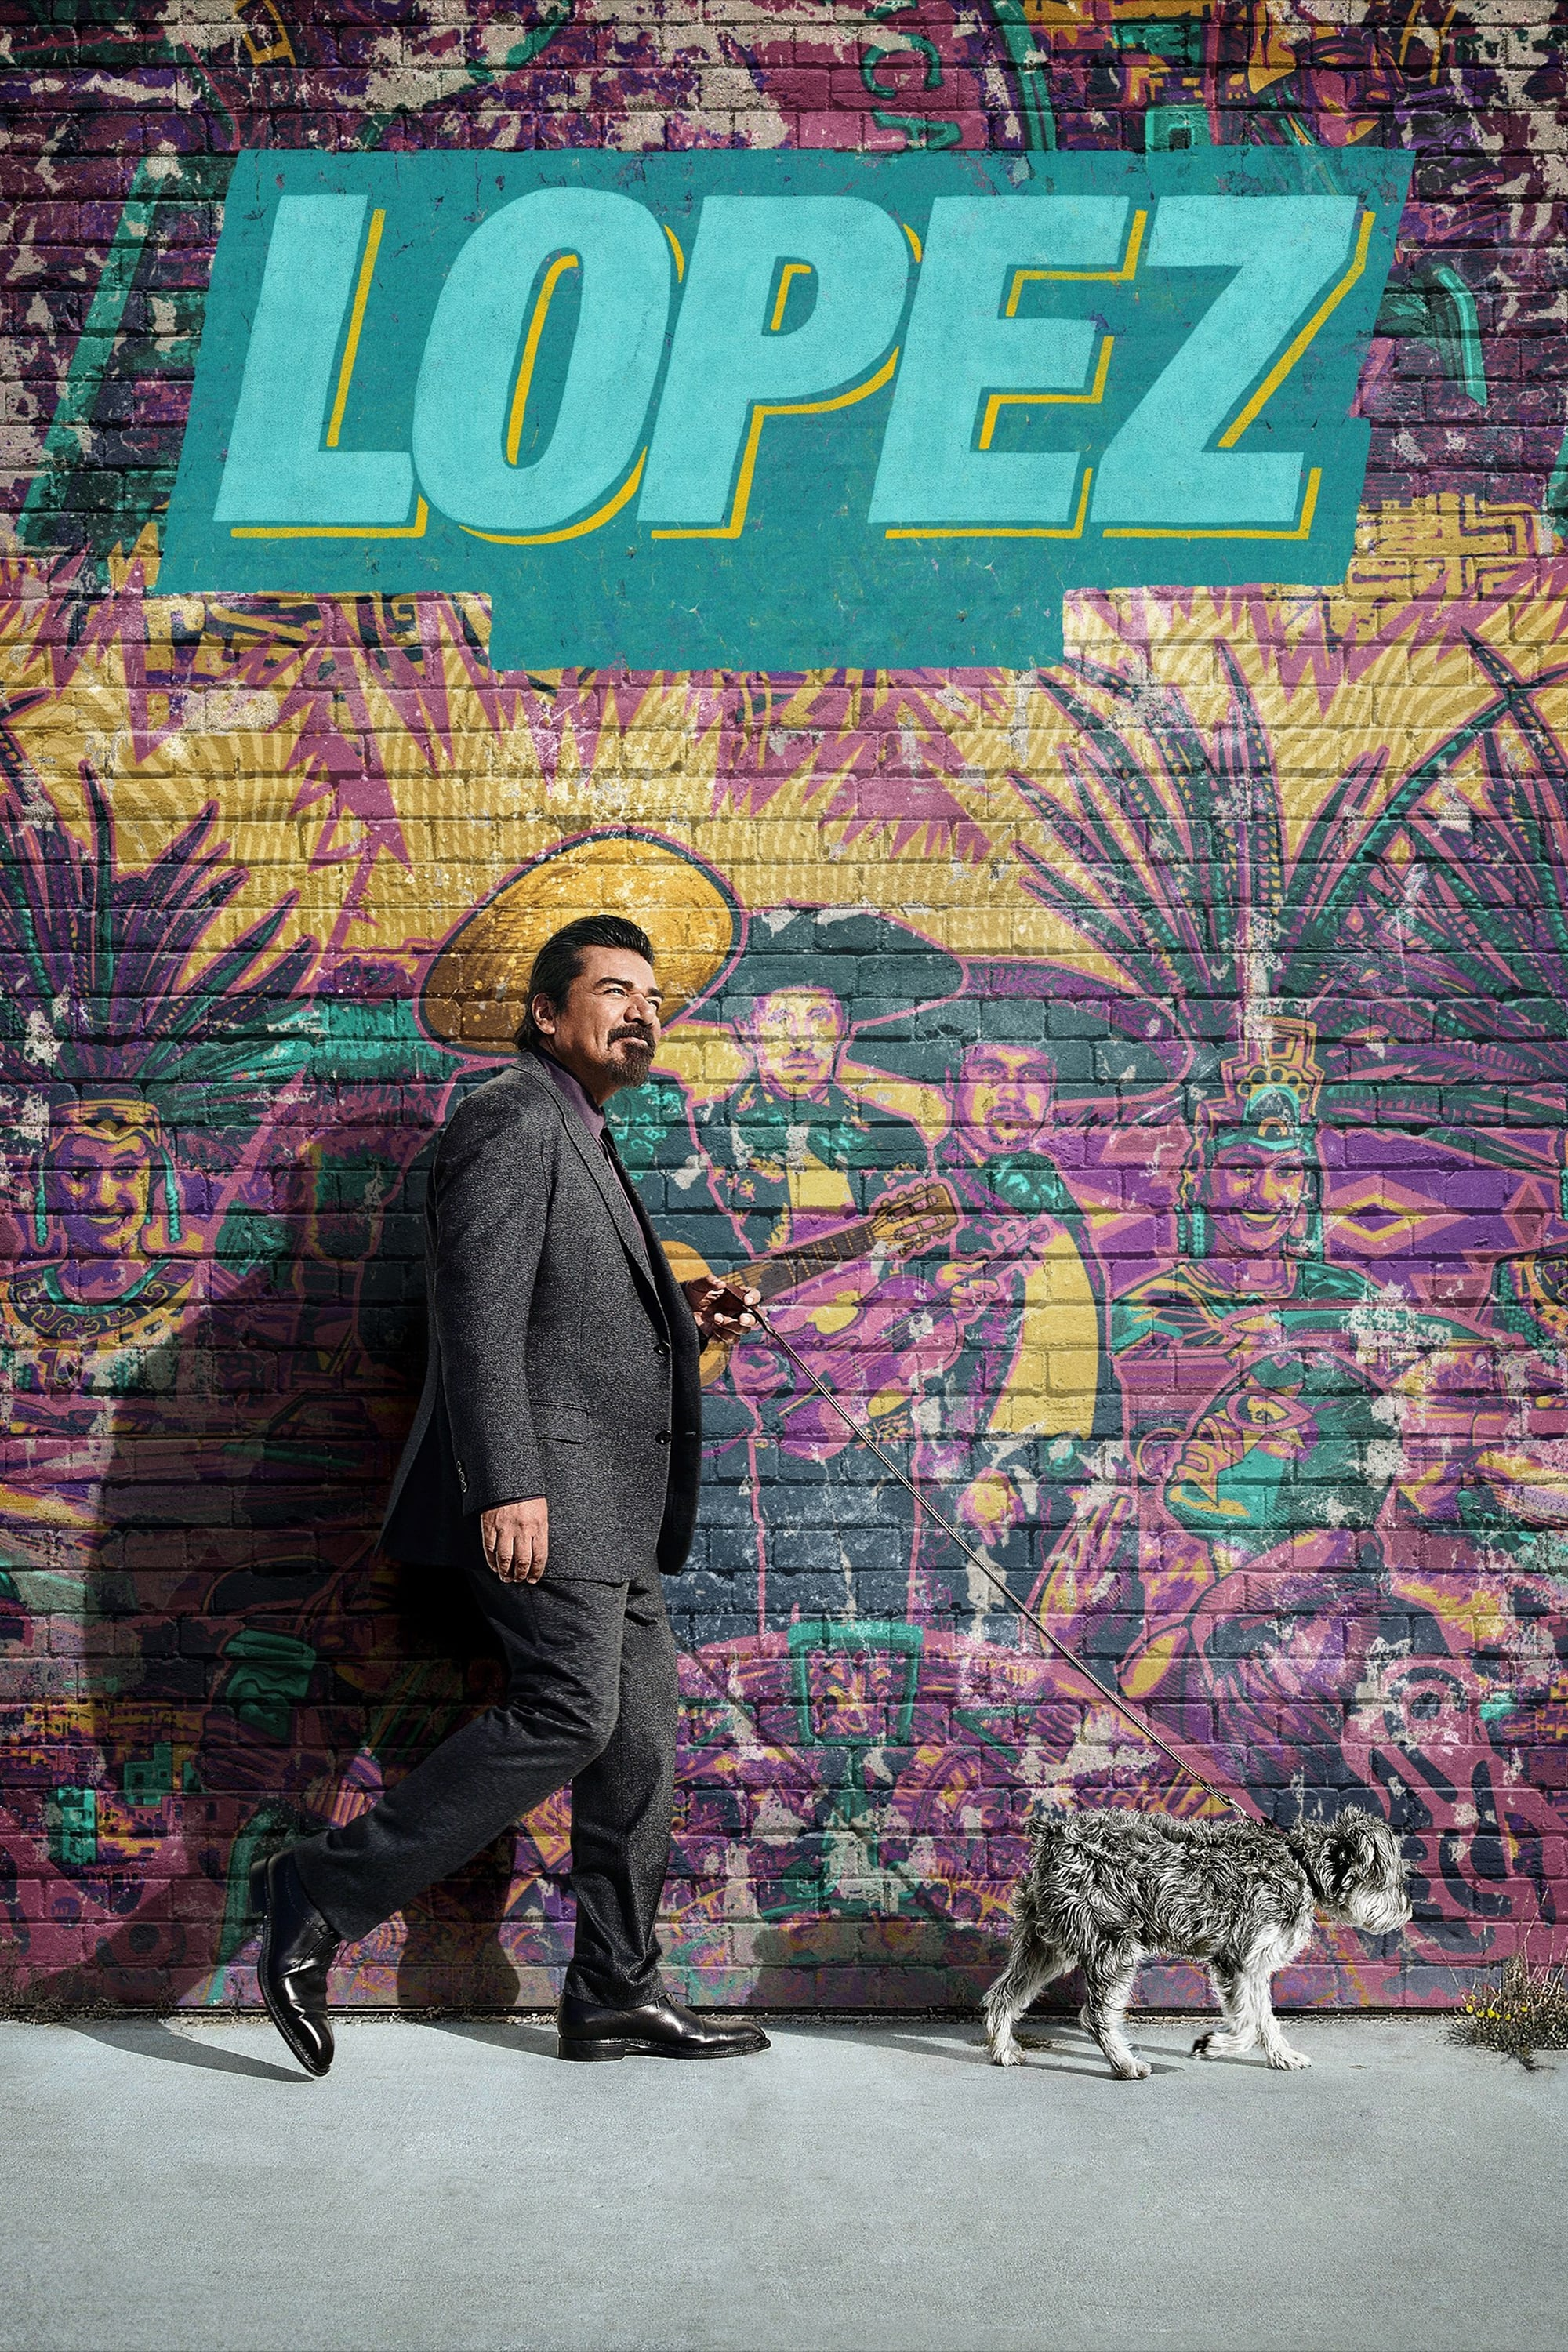 Lopez series tv complet